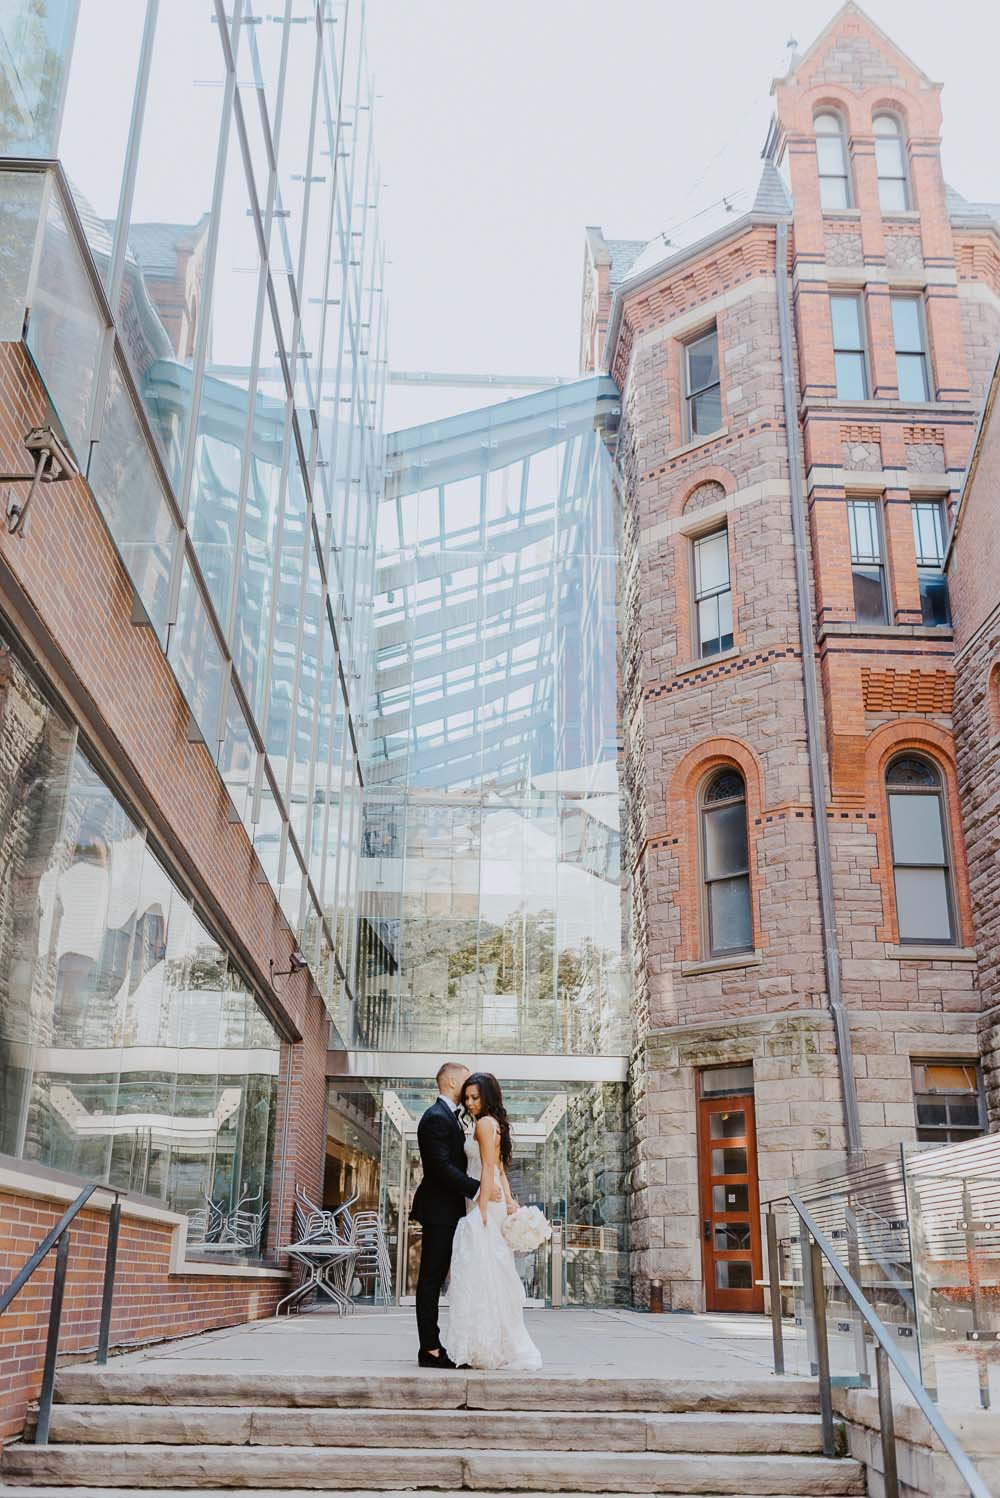 An Opulent Wedding At The Royal Conservatory Of Music - couple